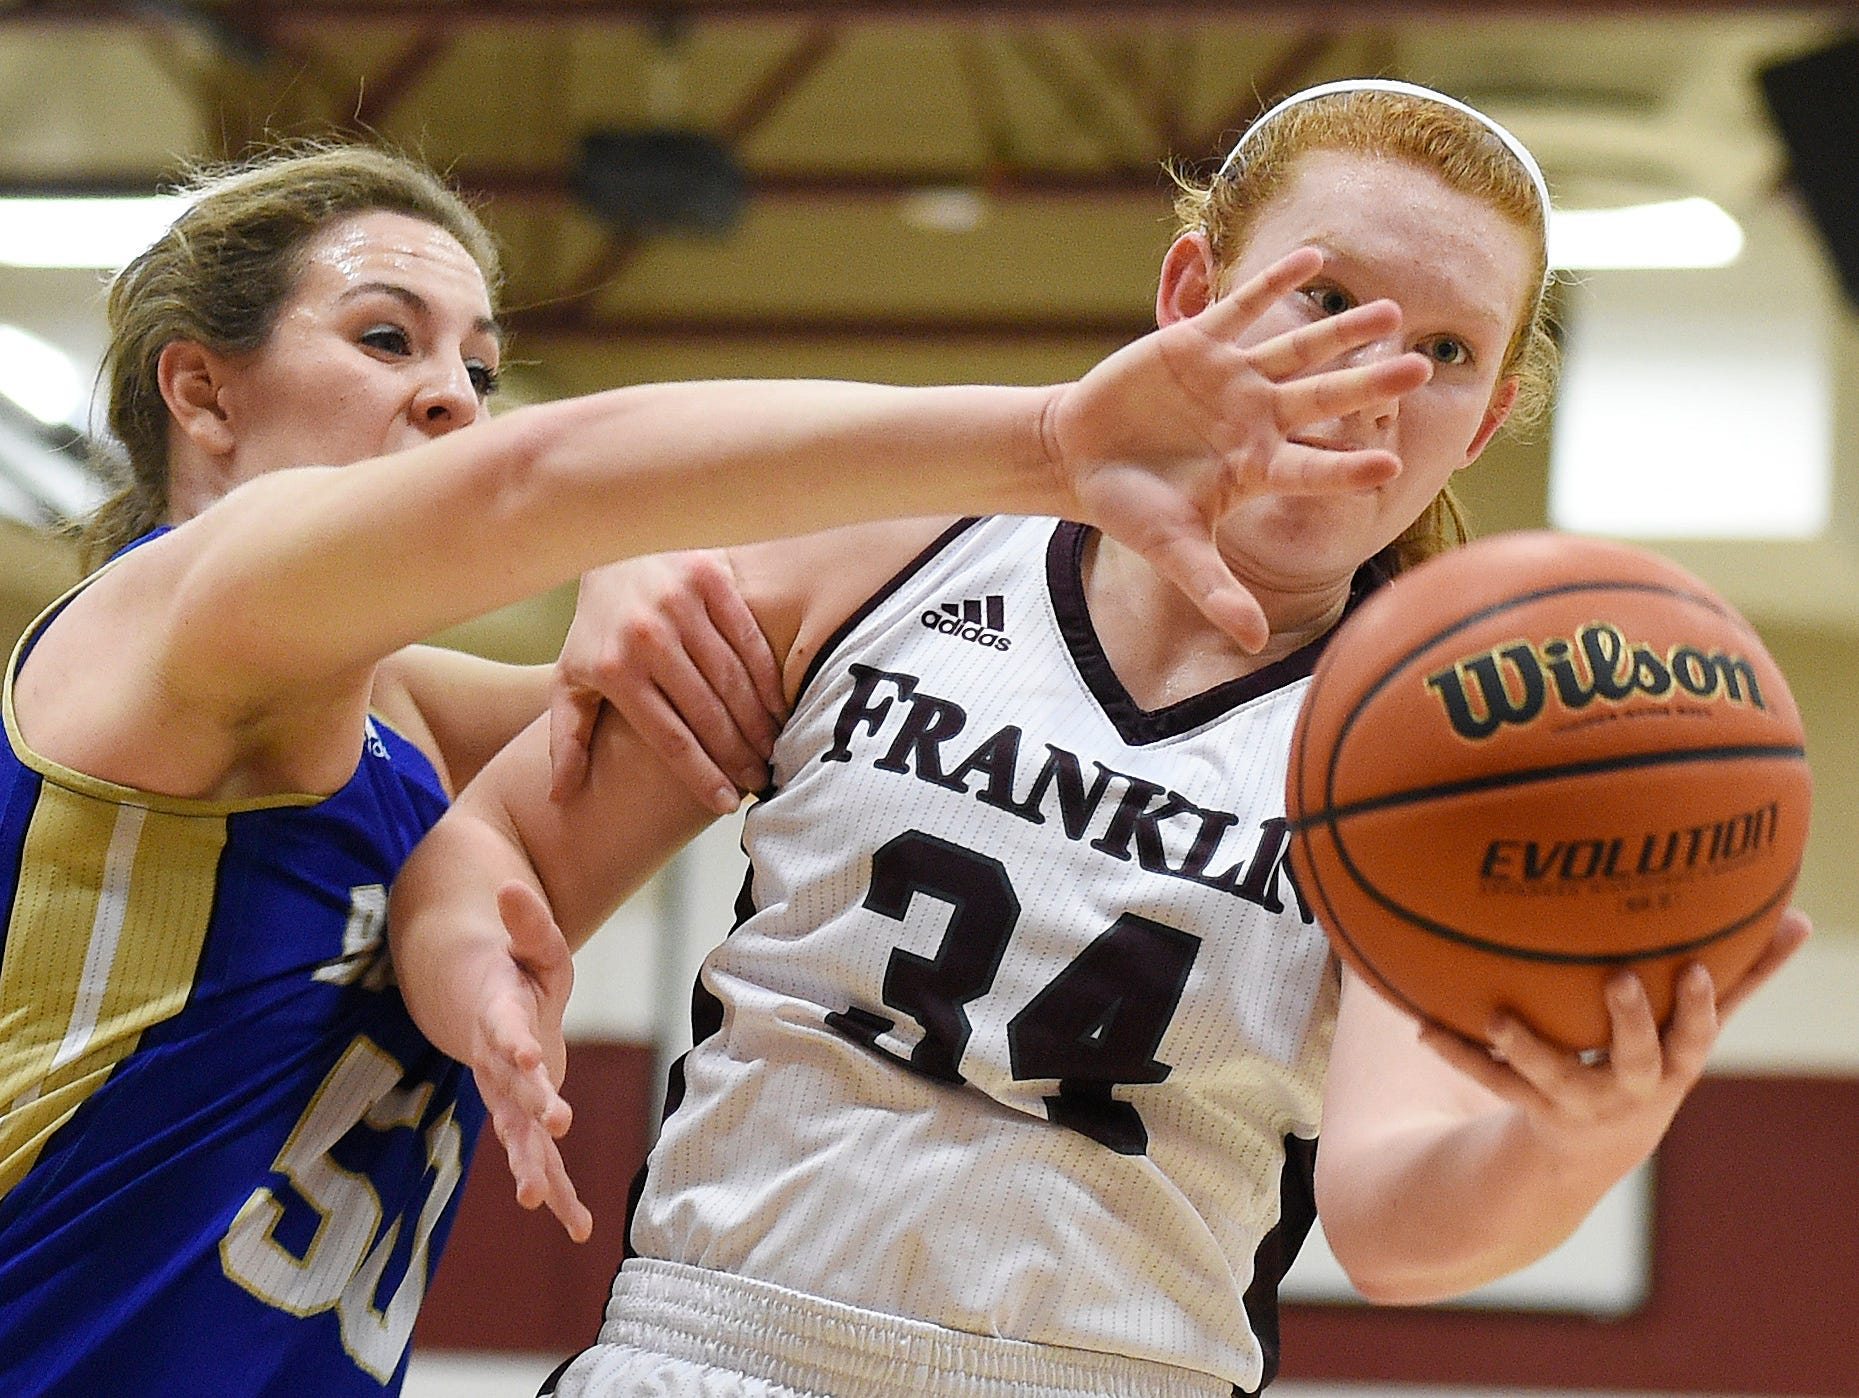 Franklin's Jodi Hill (34) battles Brentwood's Taylor Sexton (50) during the first half at Franklin High School, Tuesday, Feb. 16, 2016, in Franklin, Tenn.